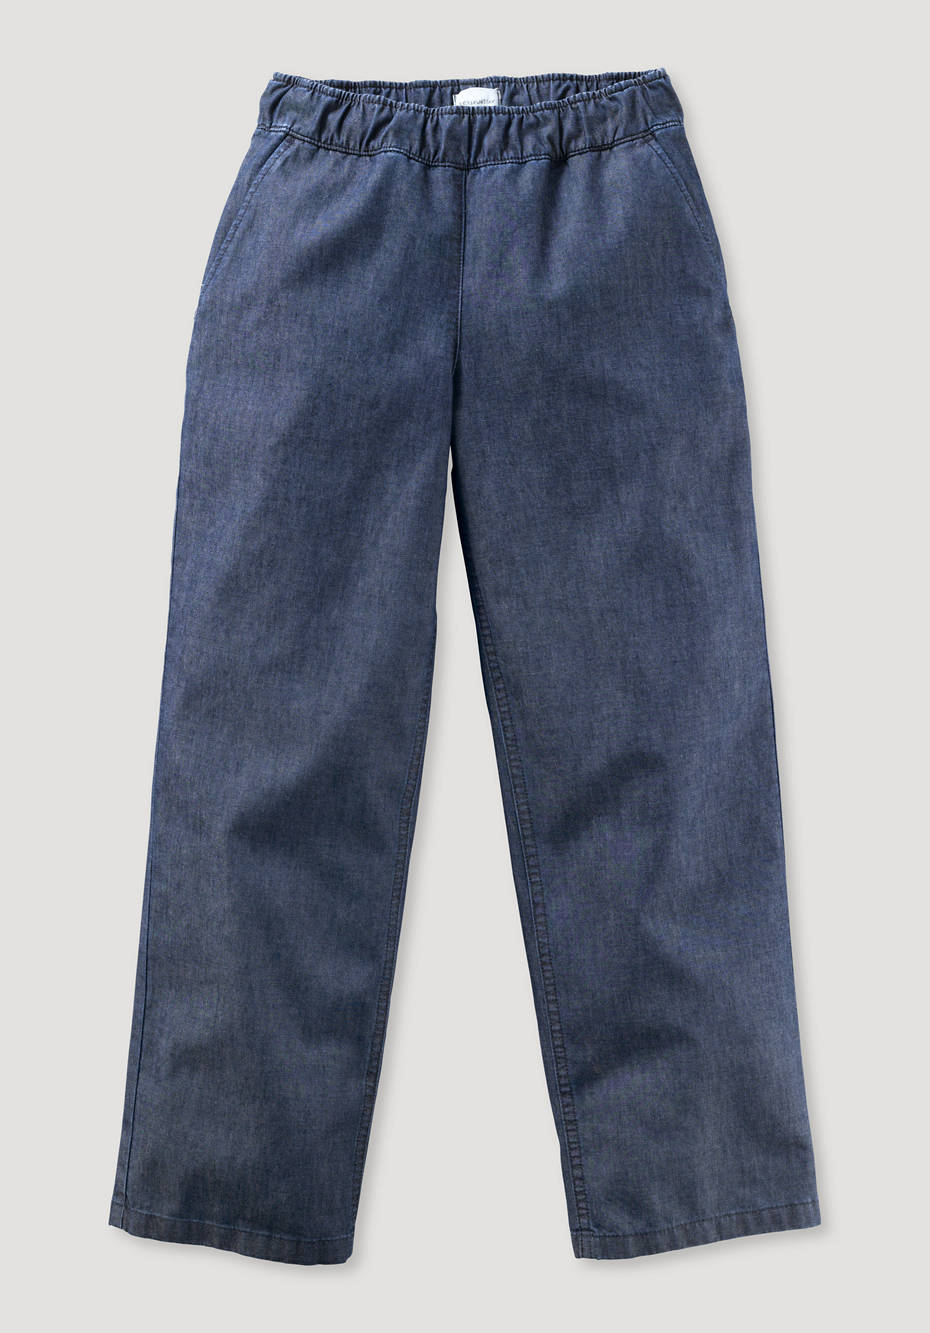 Denim pants made from pure organic cotton